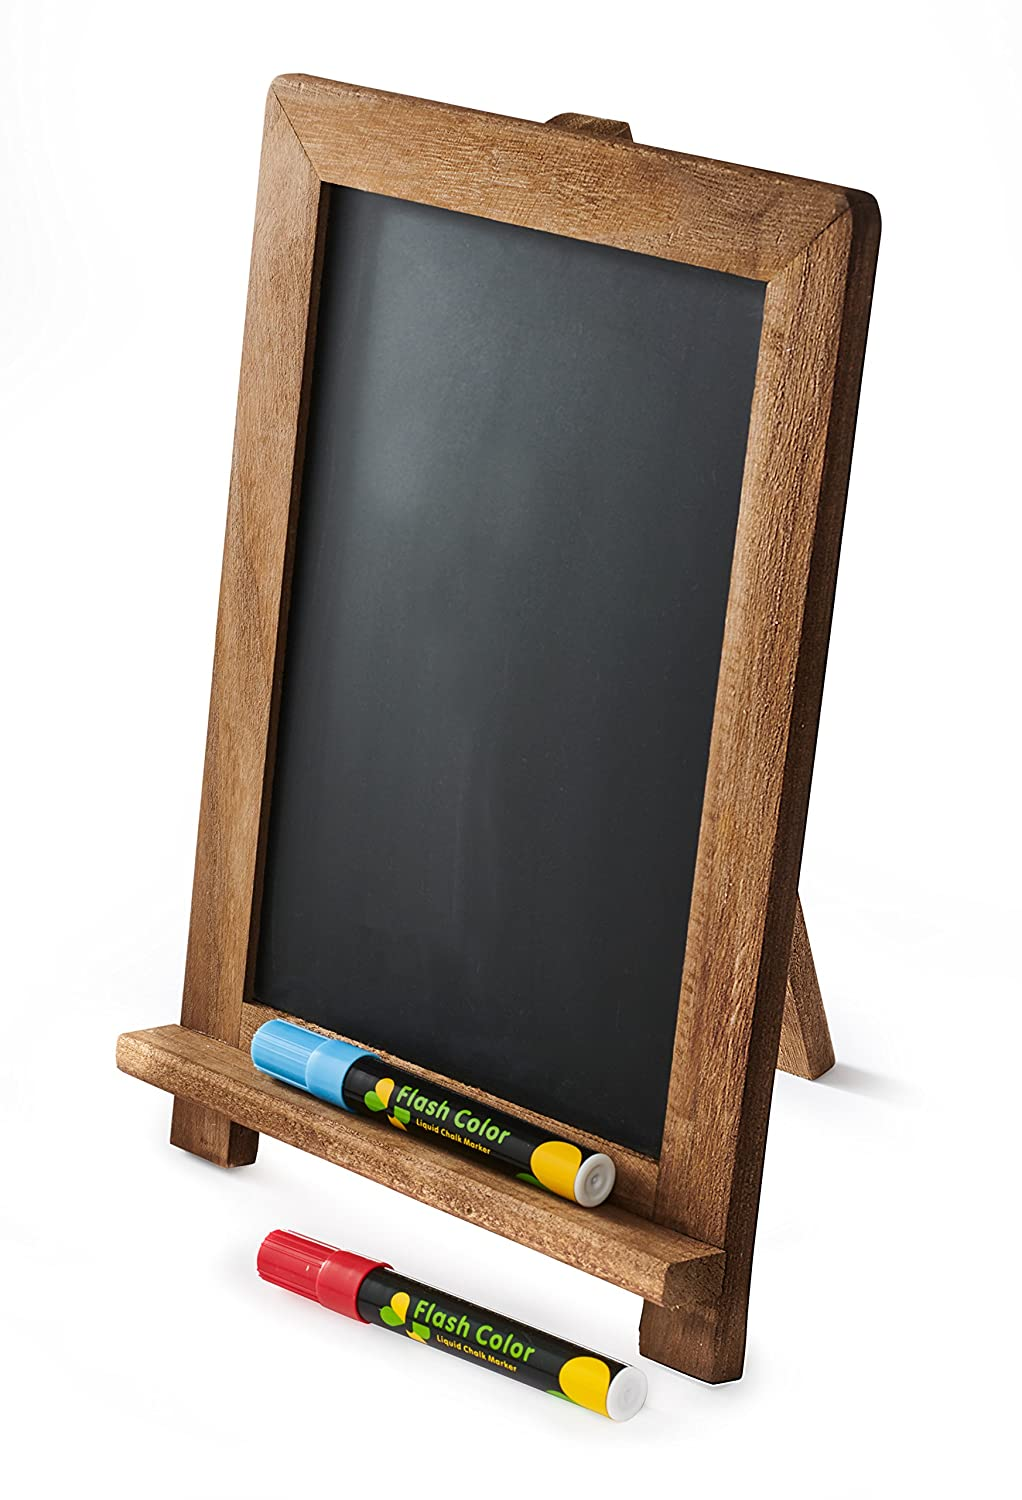 Rustic Chalkboard: Standing and Hanging Easel, Non-Porous Blackboard with Magnetic Surface, Vintage Style Wooden Frame, Decorative Sign for Weddings and Parties, Menu Display for Restaurants By Gaard